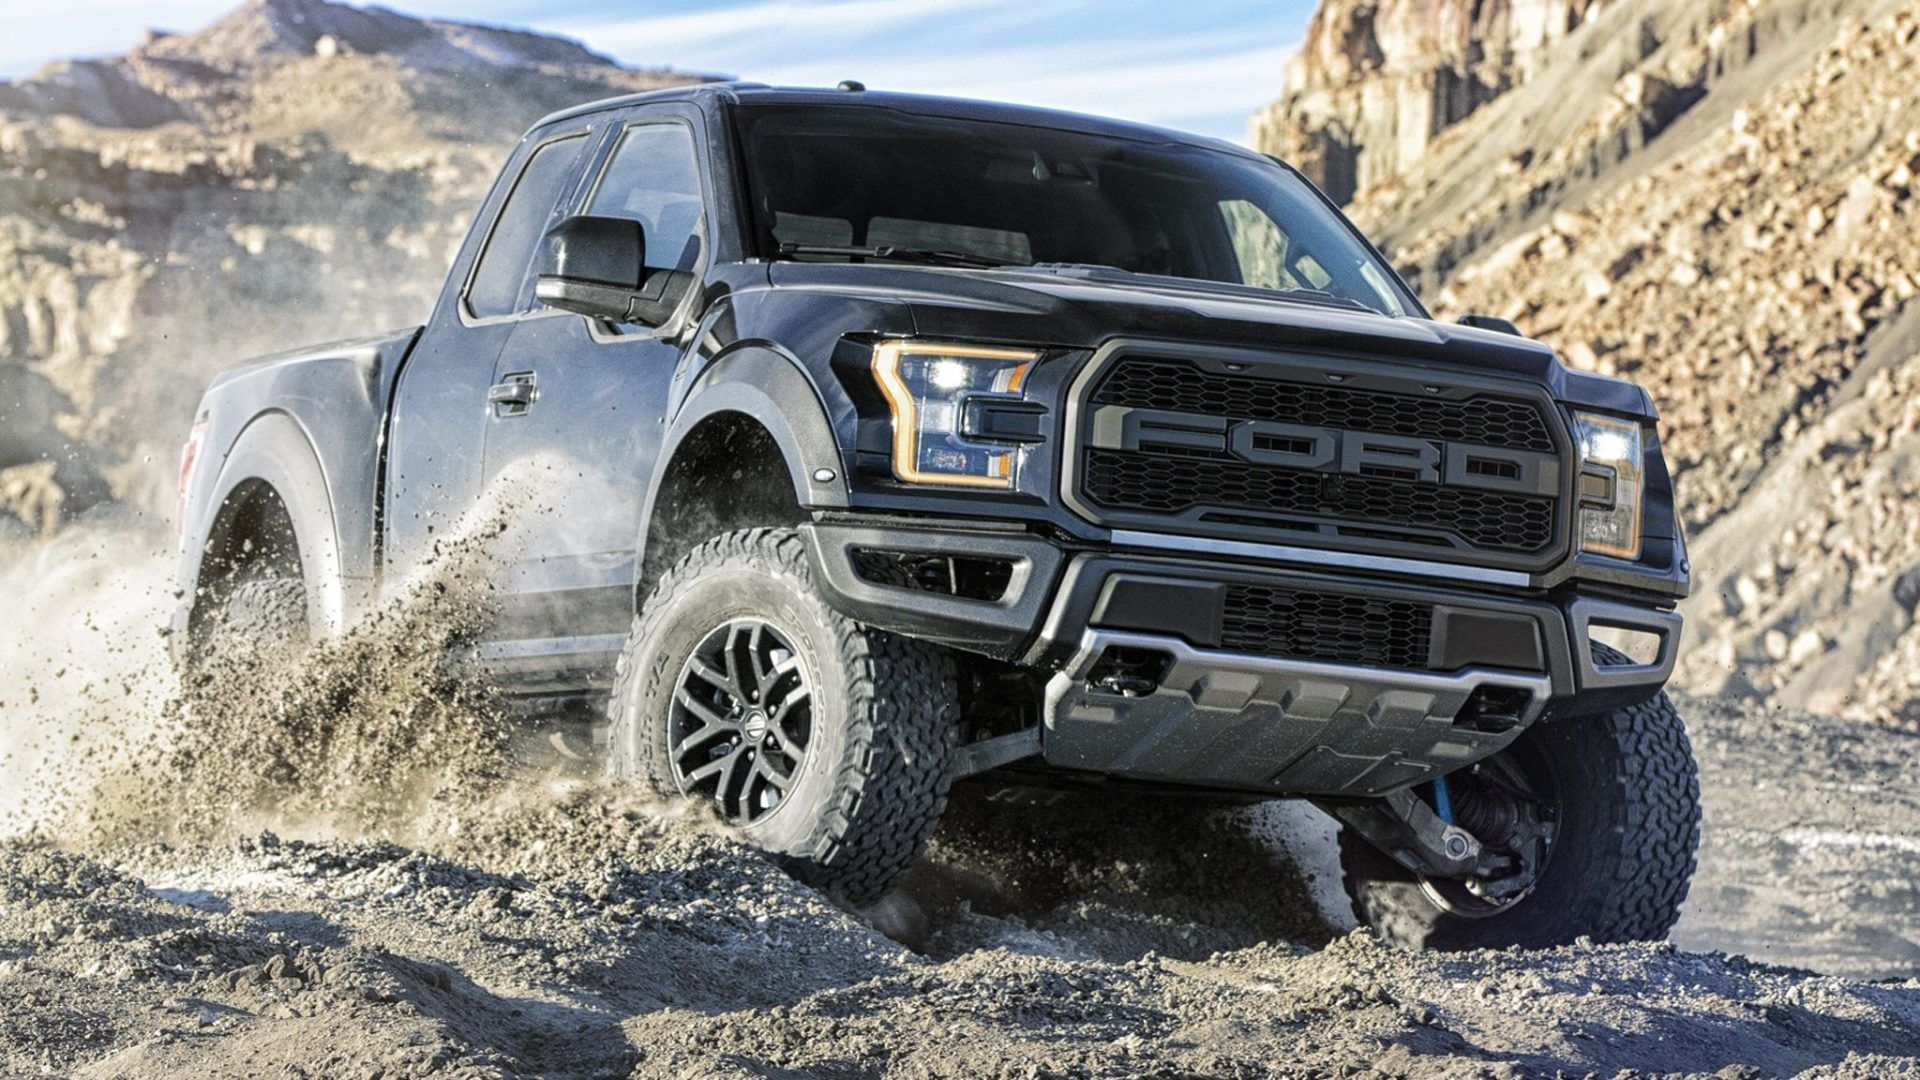 Ford f raptor wallpaper hd car wallpapers wallpapers 4k ford f raptor wallpaper hd car wallpapers voltagebd Image collections